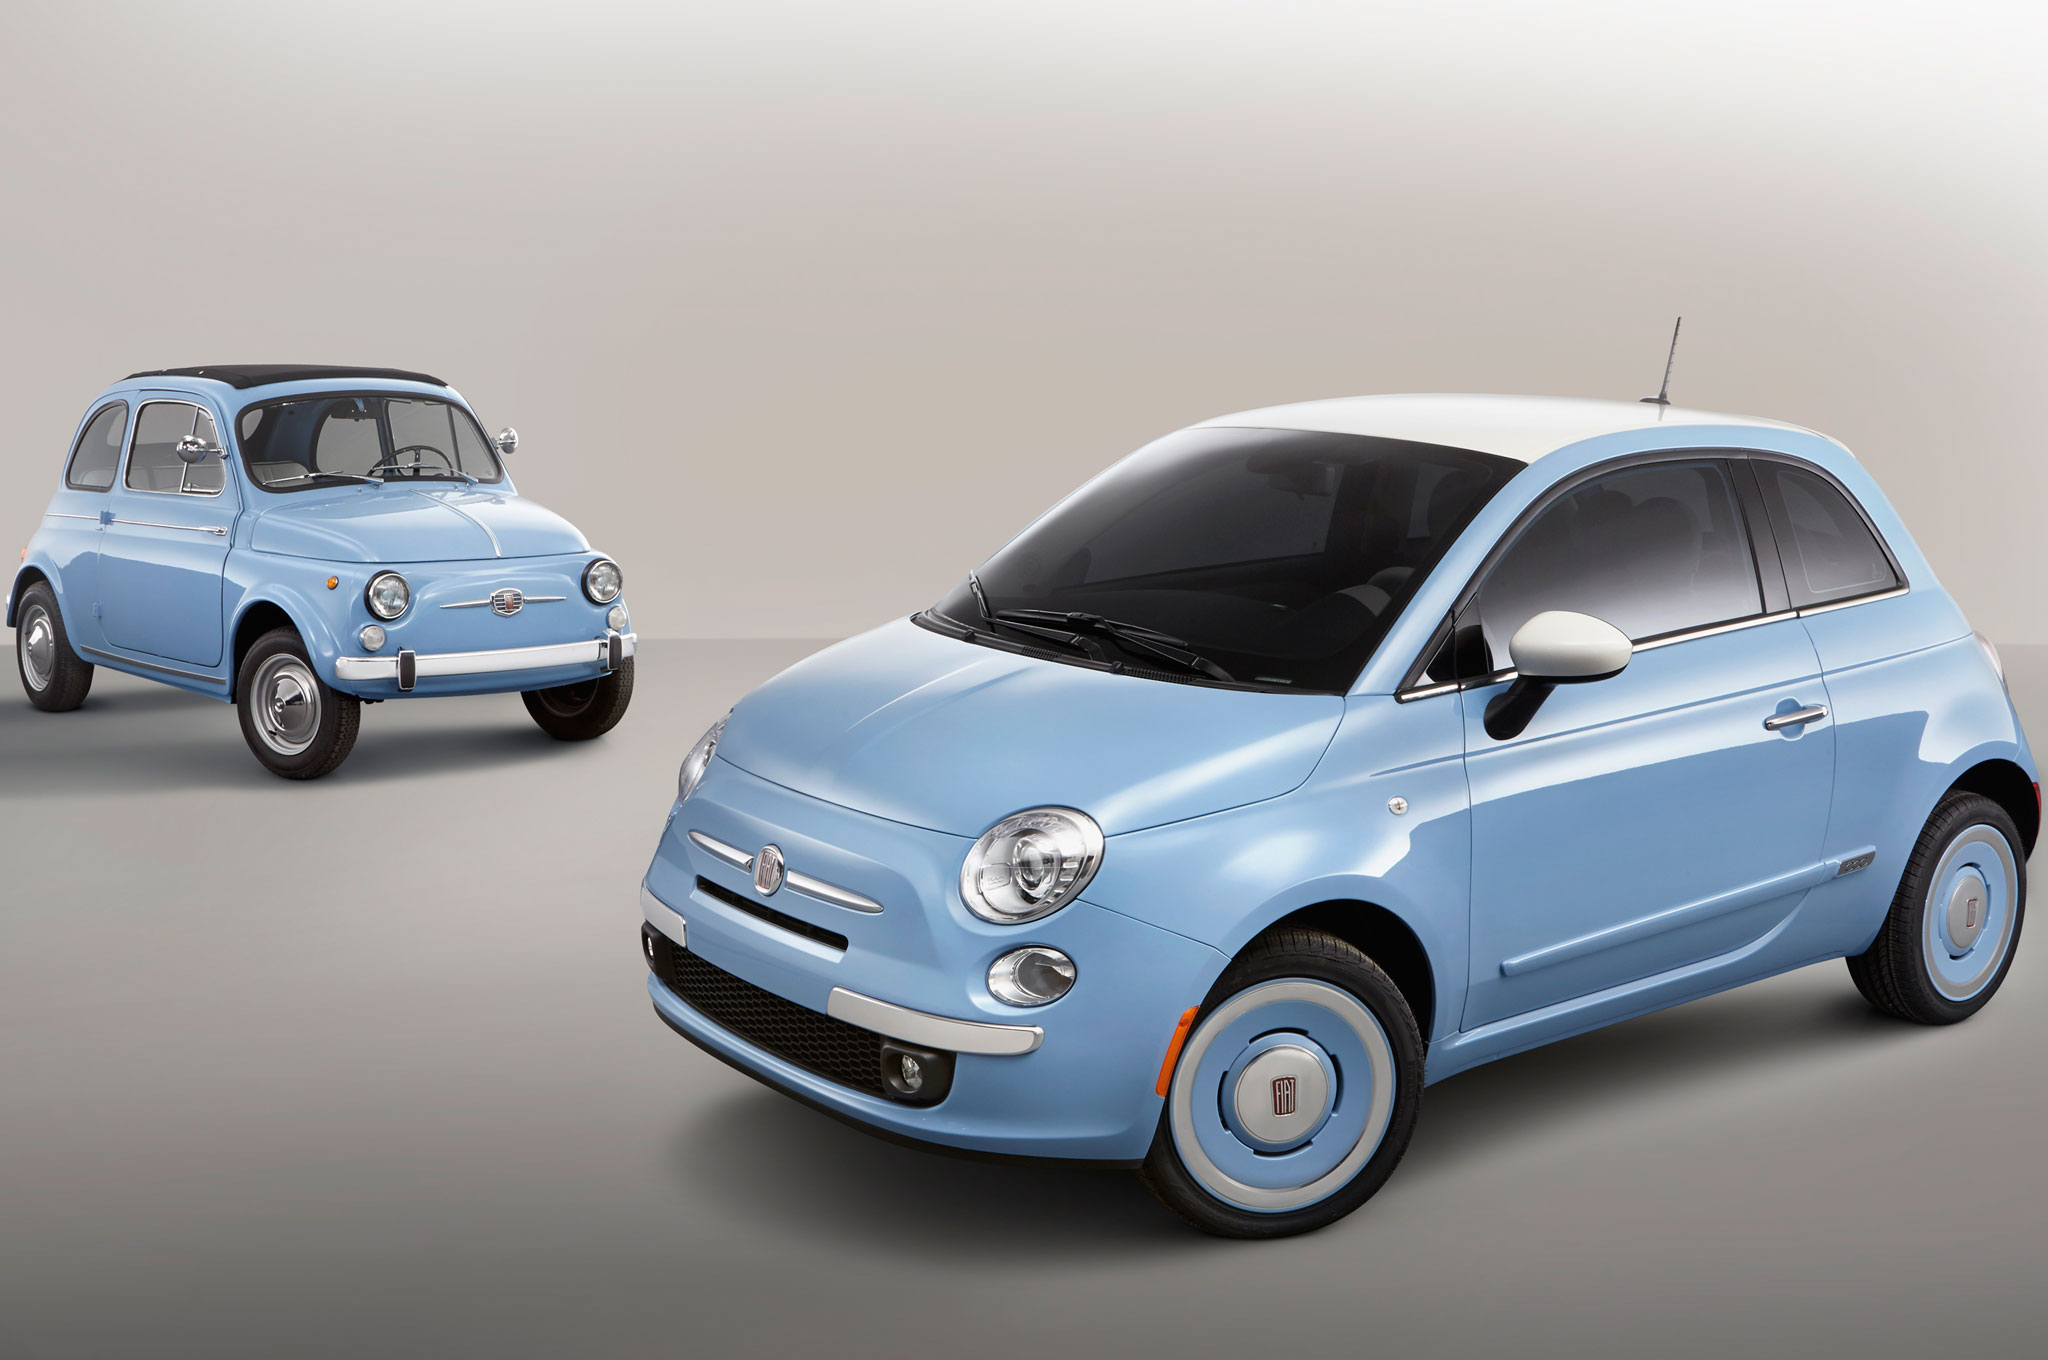 2014 Fiat 500 1957 Edition Celebrates Nameplate's 57th Anniversary